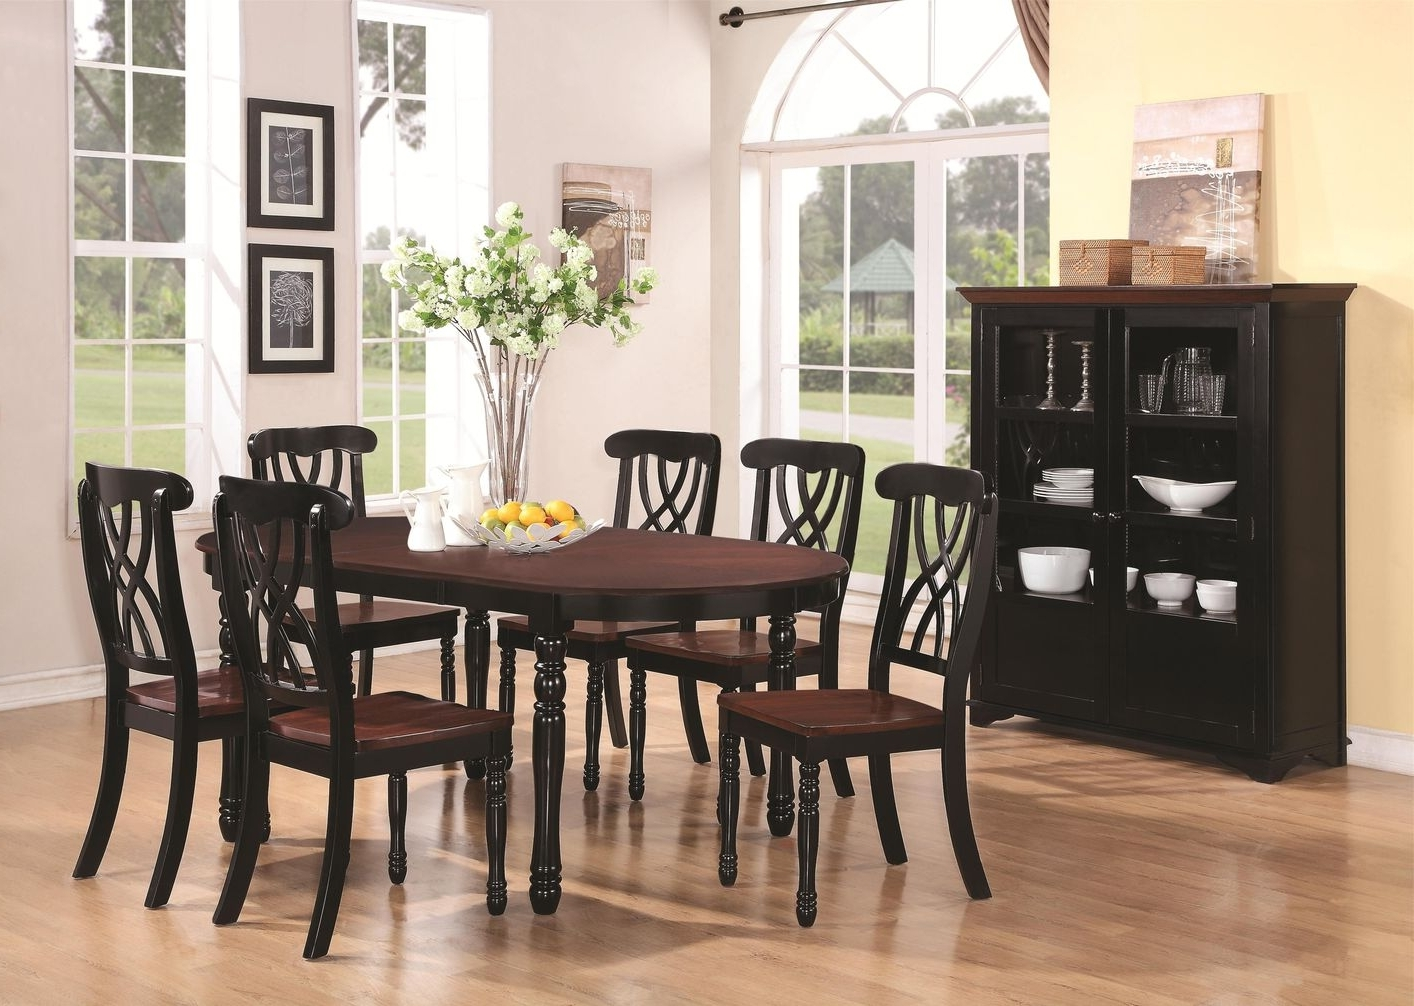 Black Wood Dining Tables Sets Within Most Recently Released Addison Black And Cherry Wood Dining Table – Steal A Sofa Furniture (View 9 of 25)